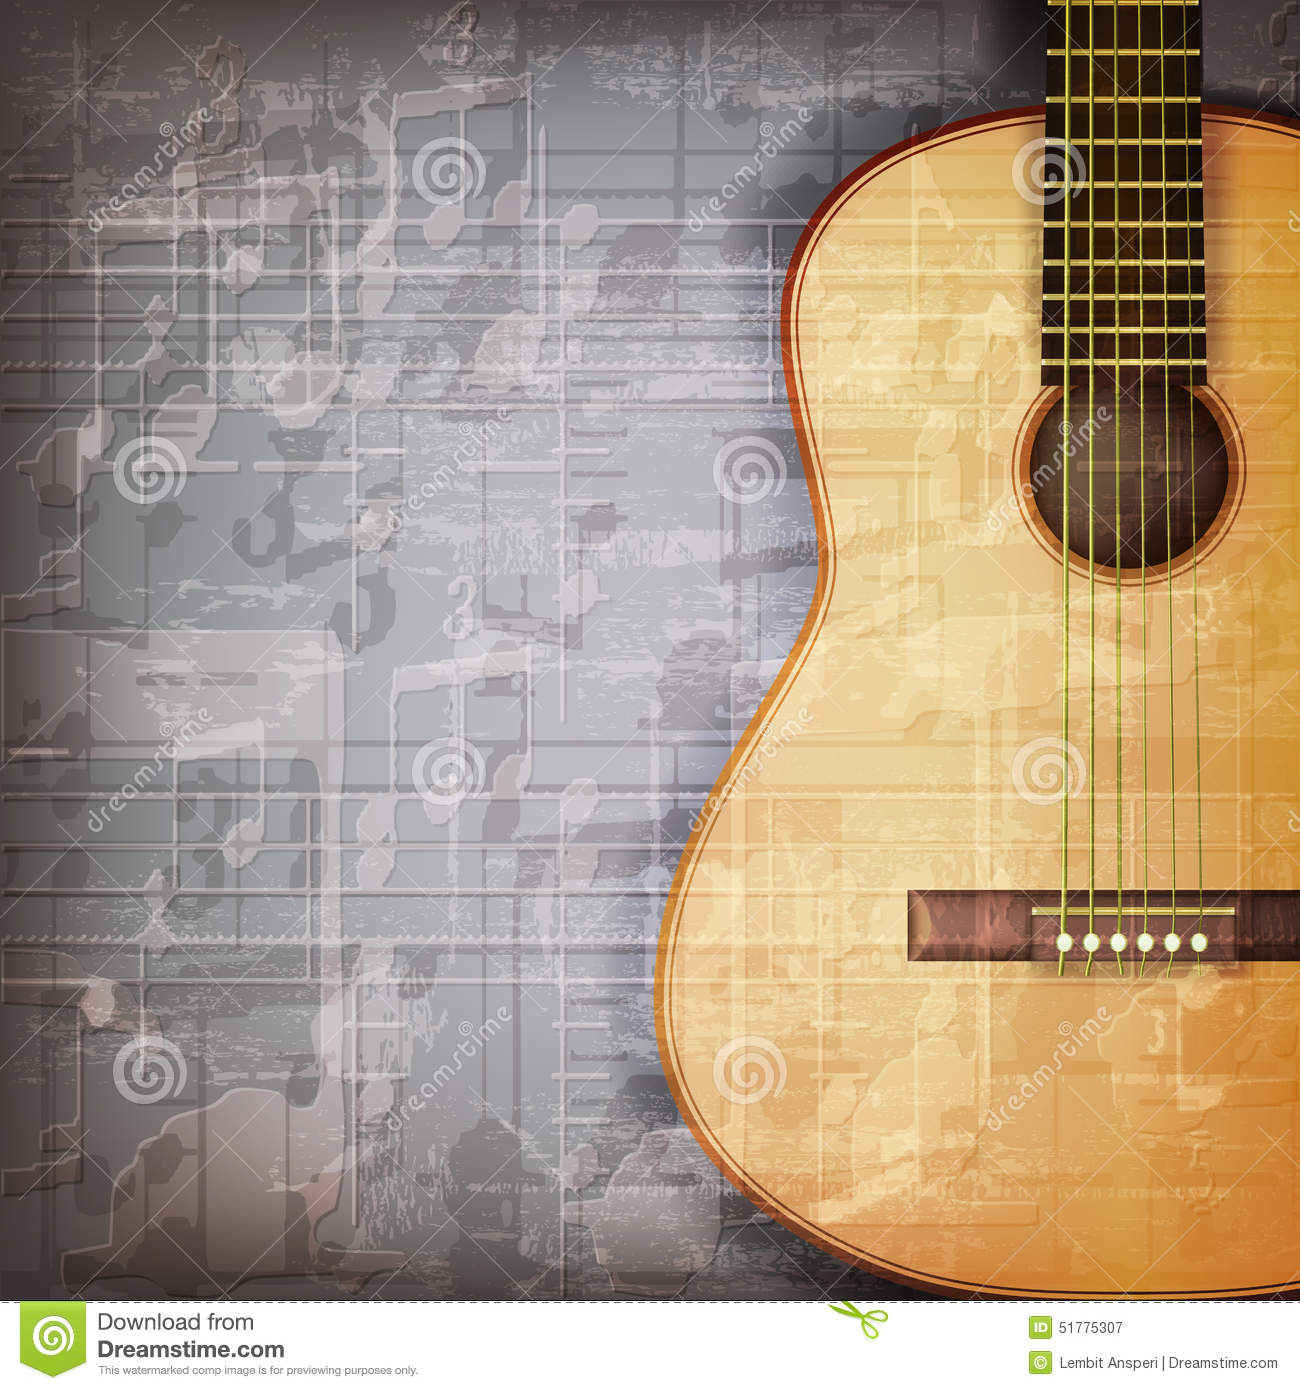 music time guitar abstract - photo #24